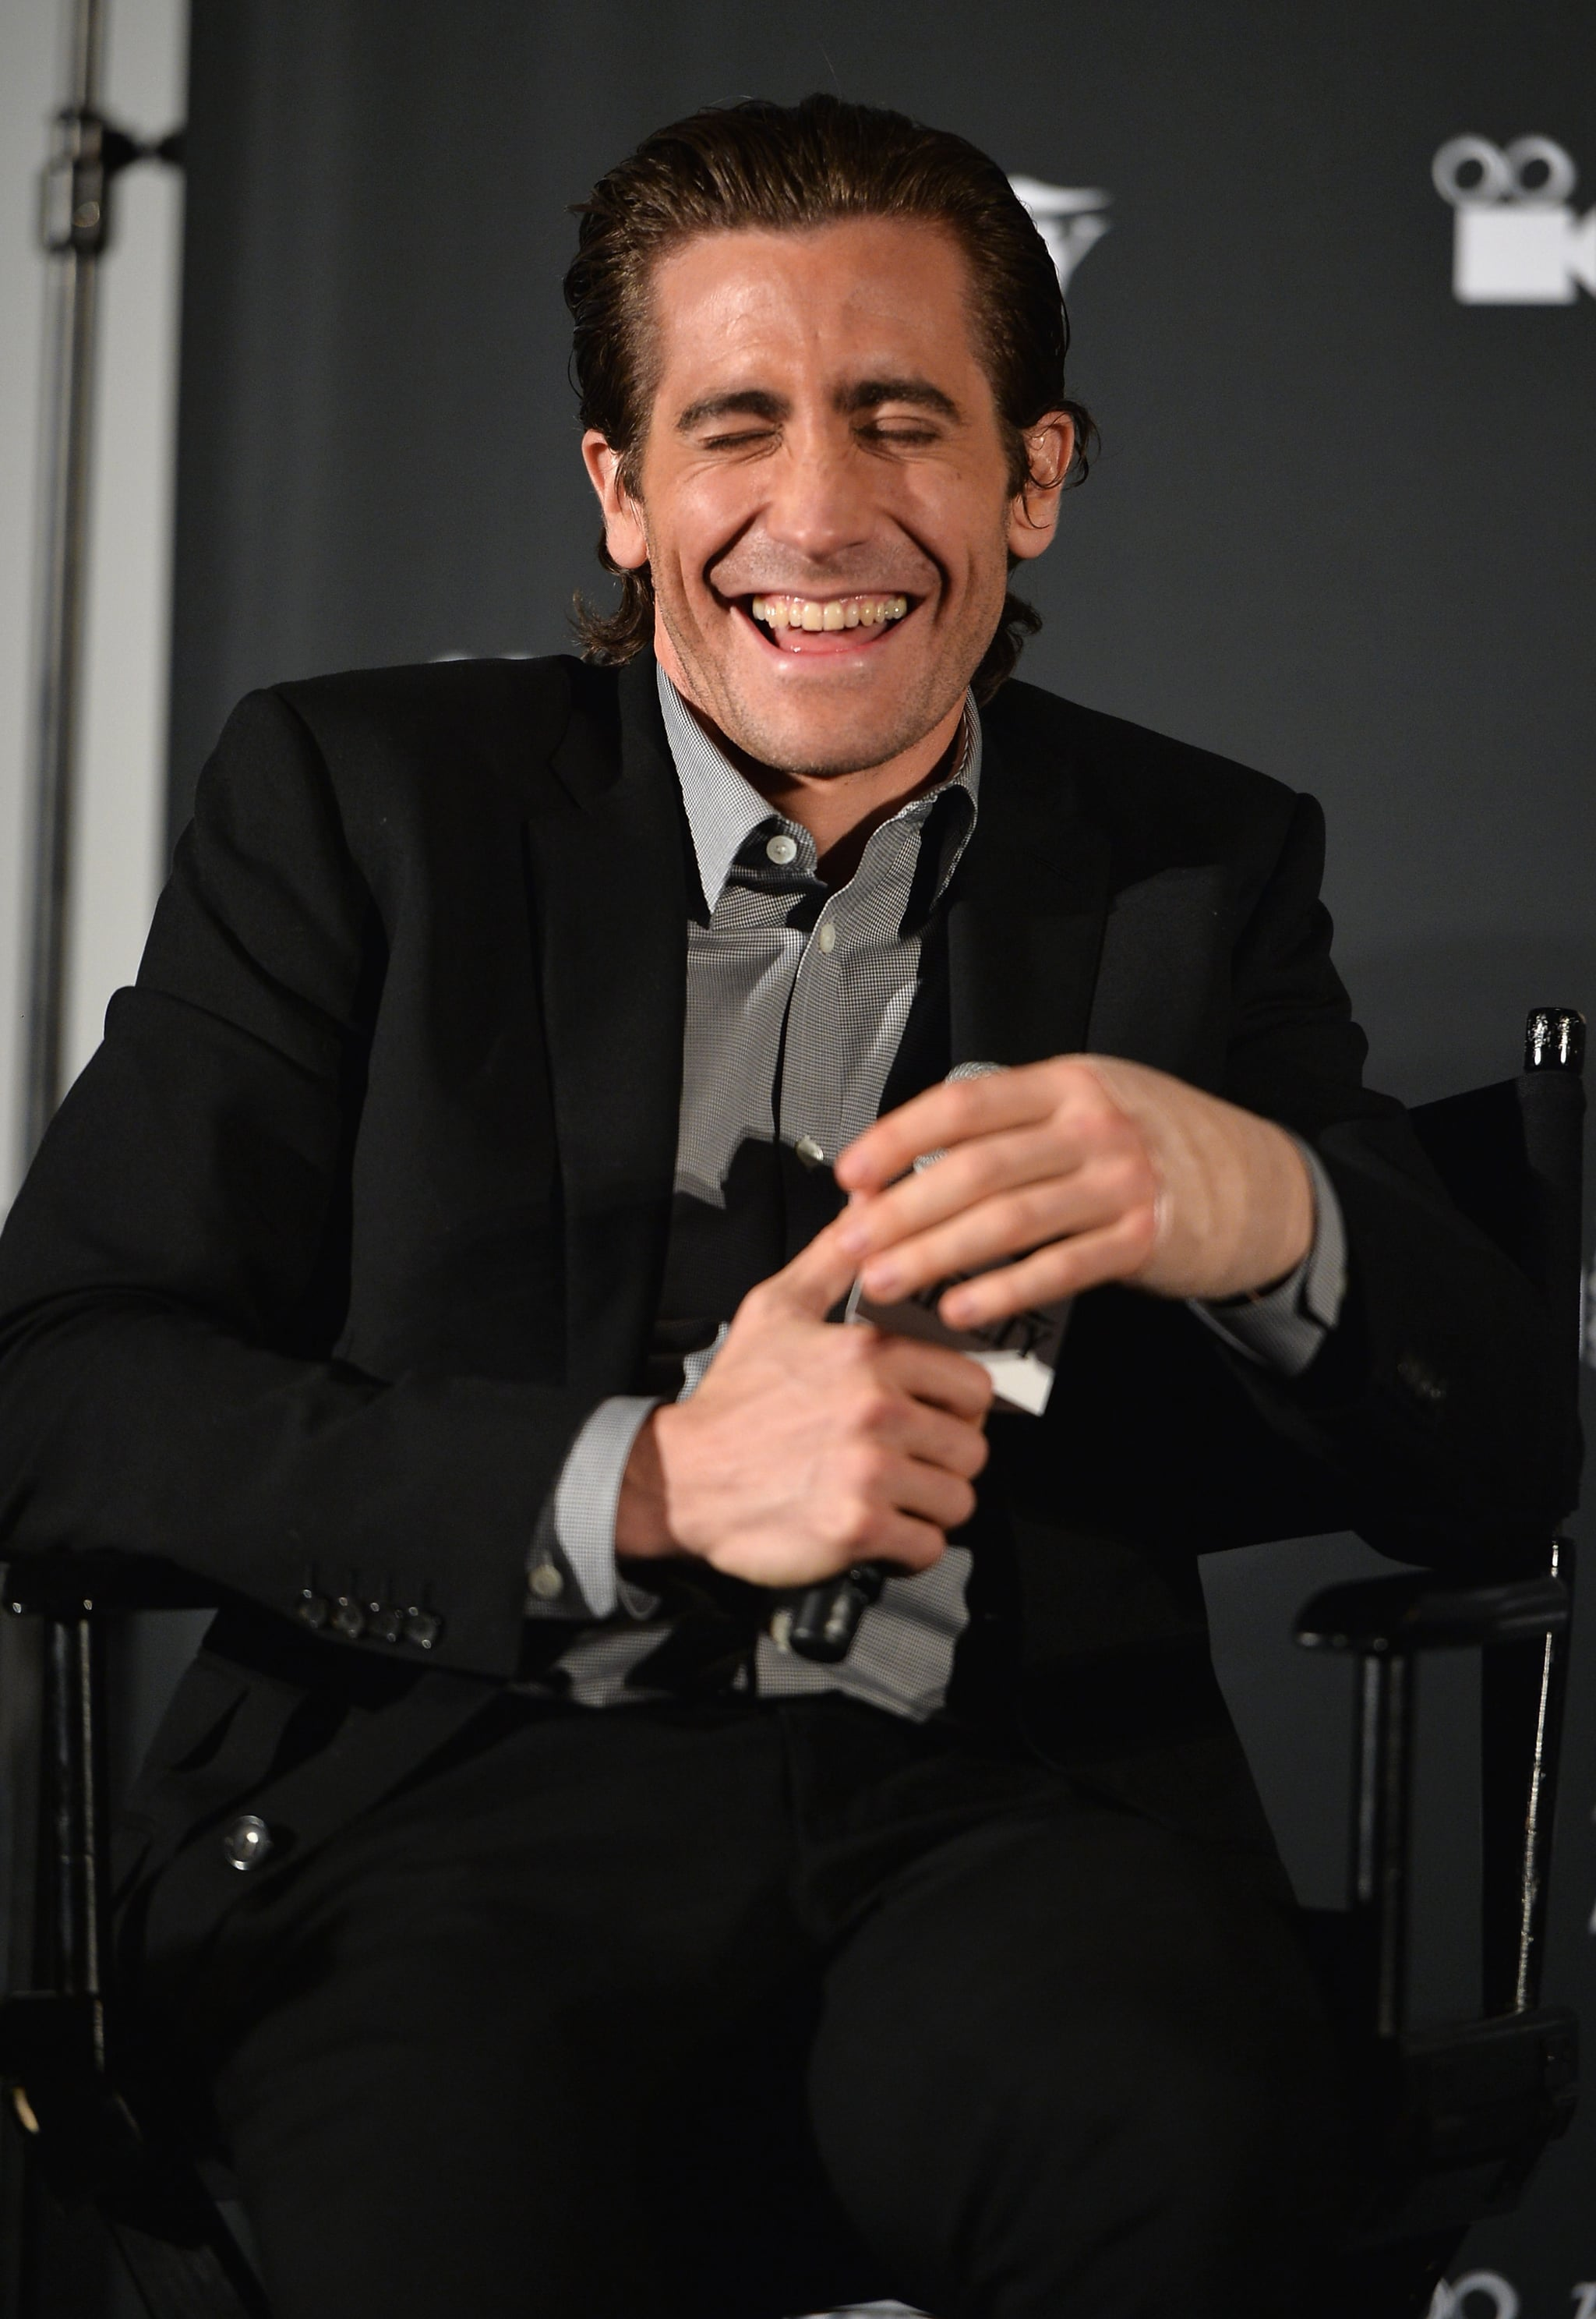 He couldn't stop laughing during a screening of Prisoners in Hollywood in November 2013.